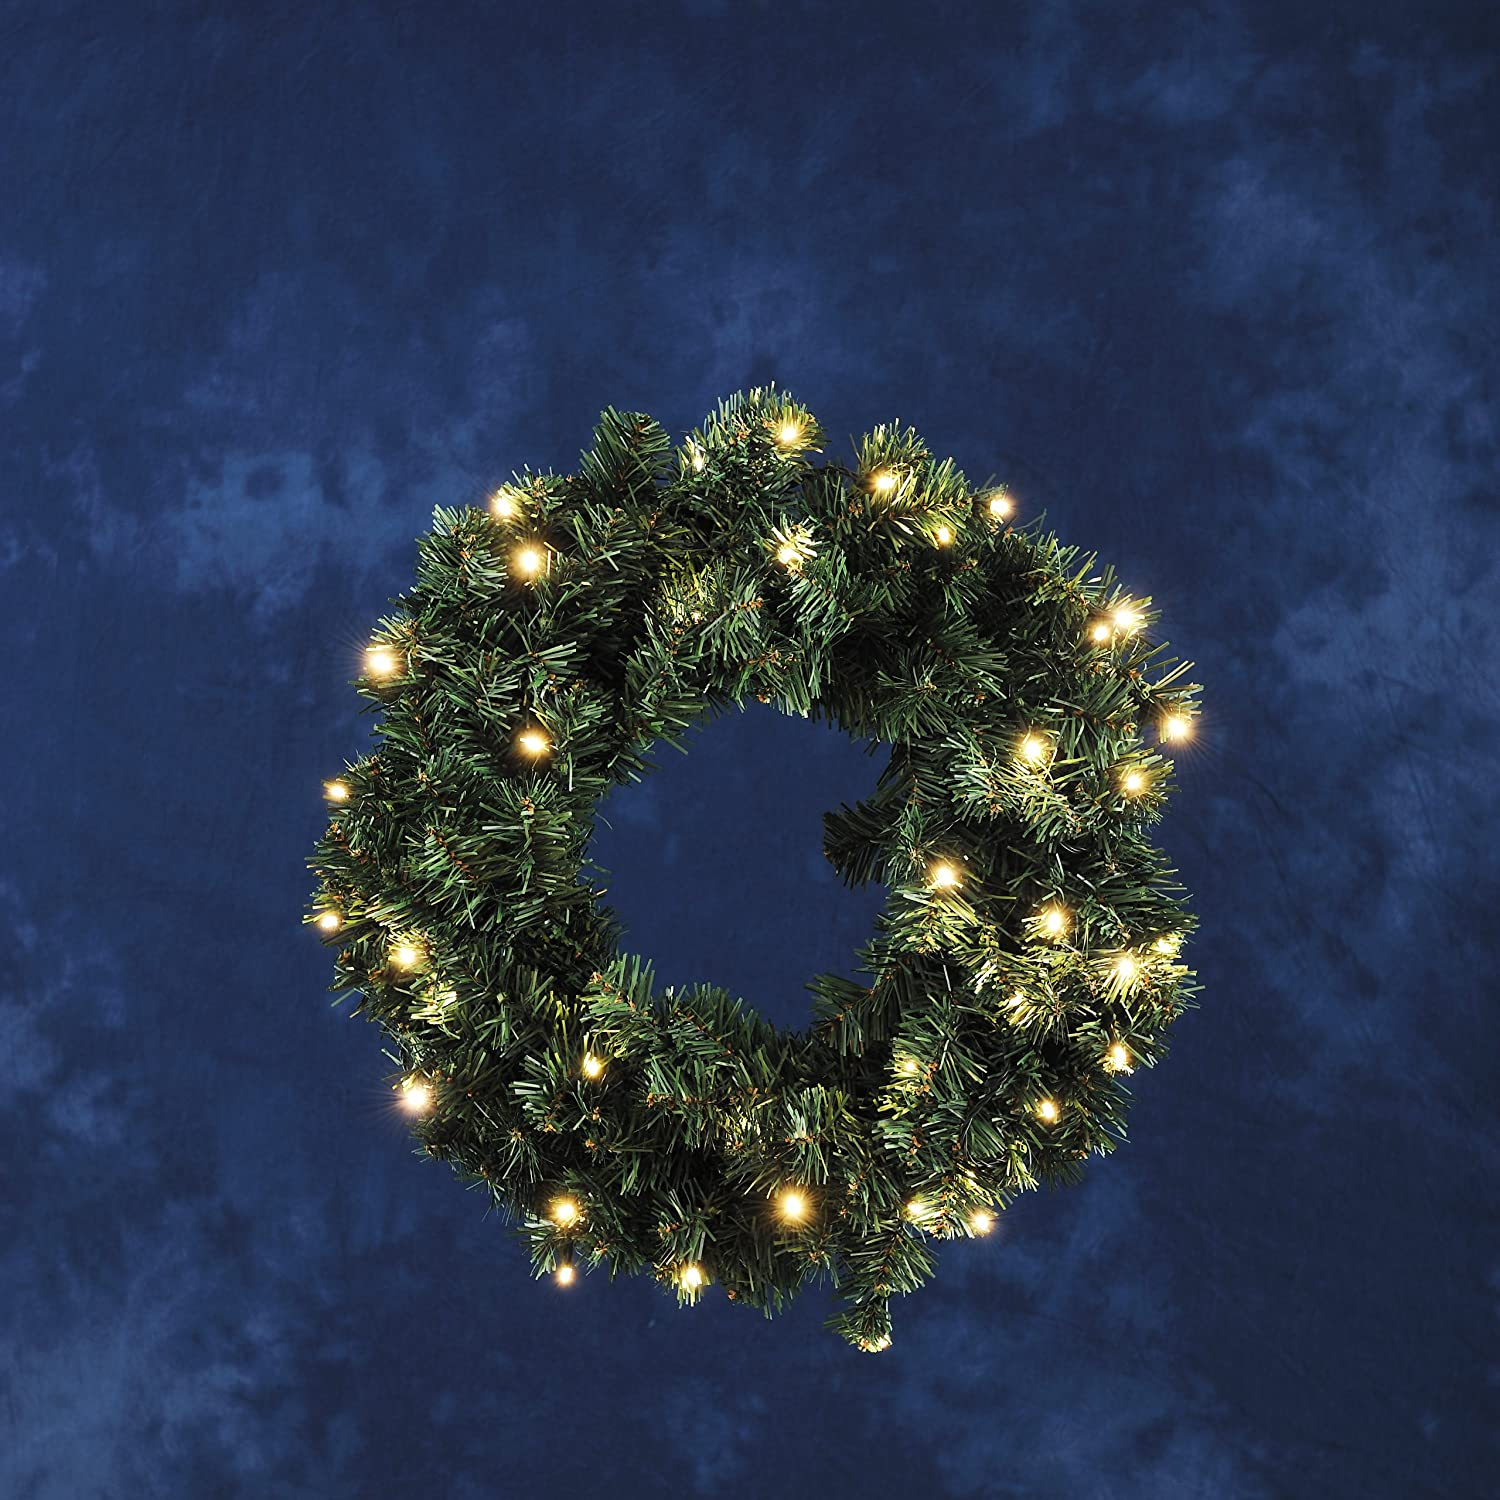 Konstsmide Outdoor Battery Operated Wreath 60 LEDs 60 cm with Dusk